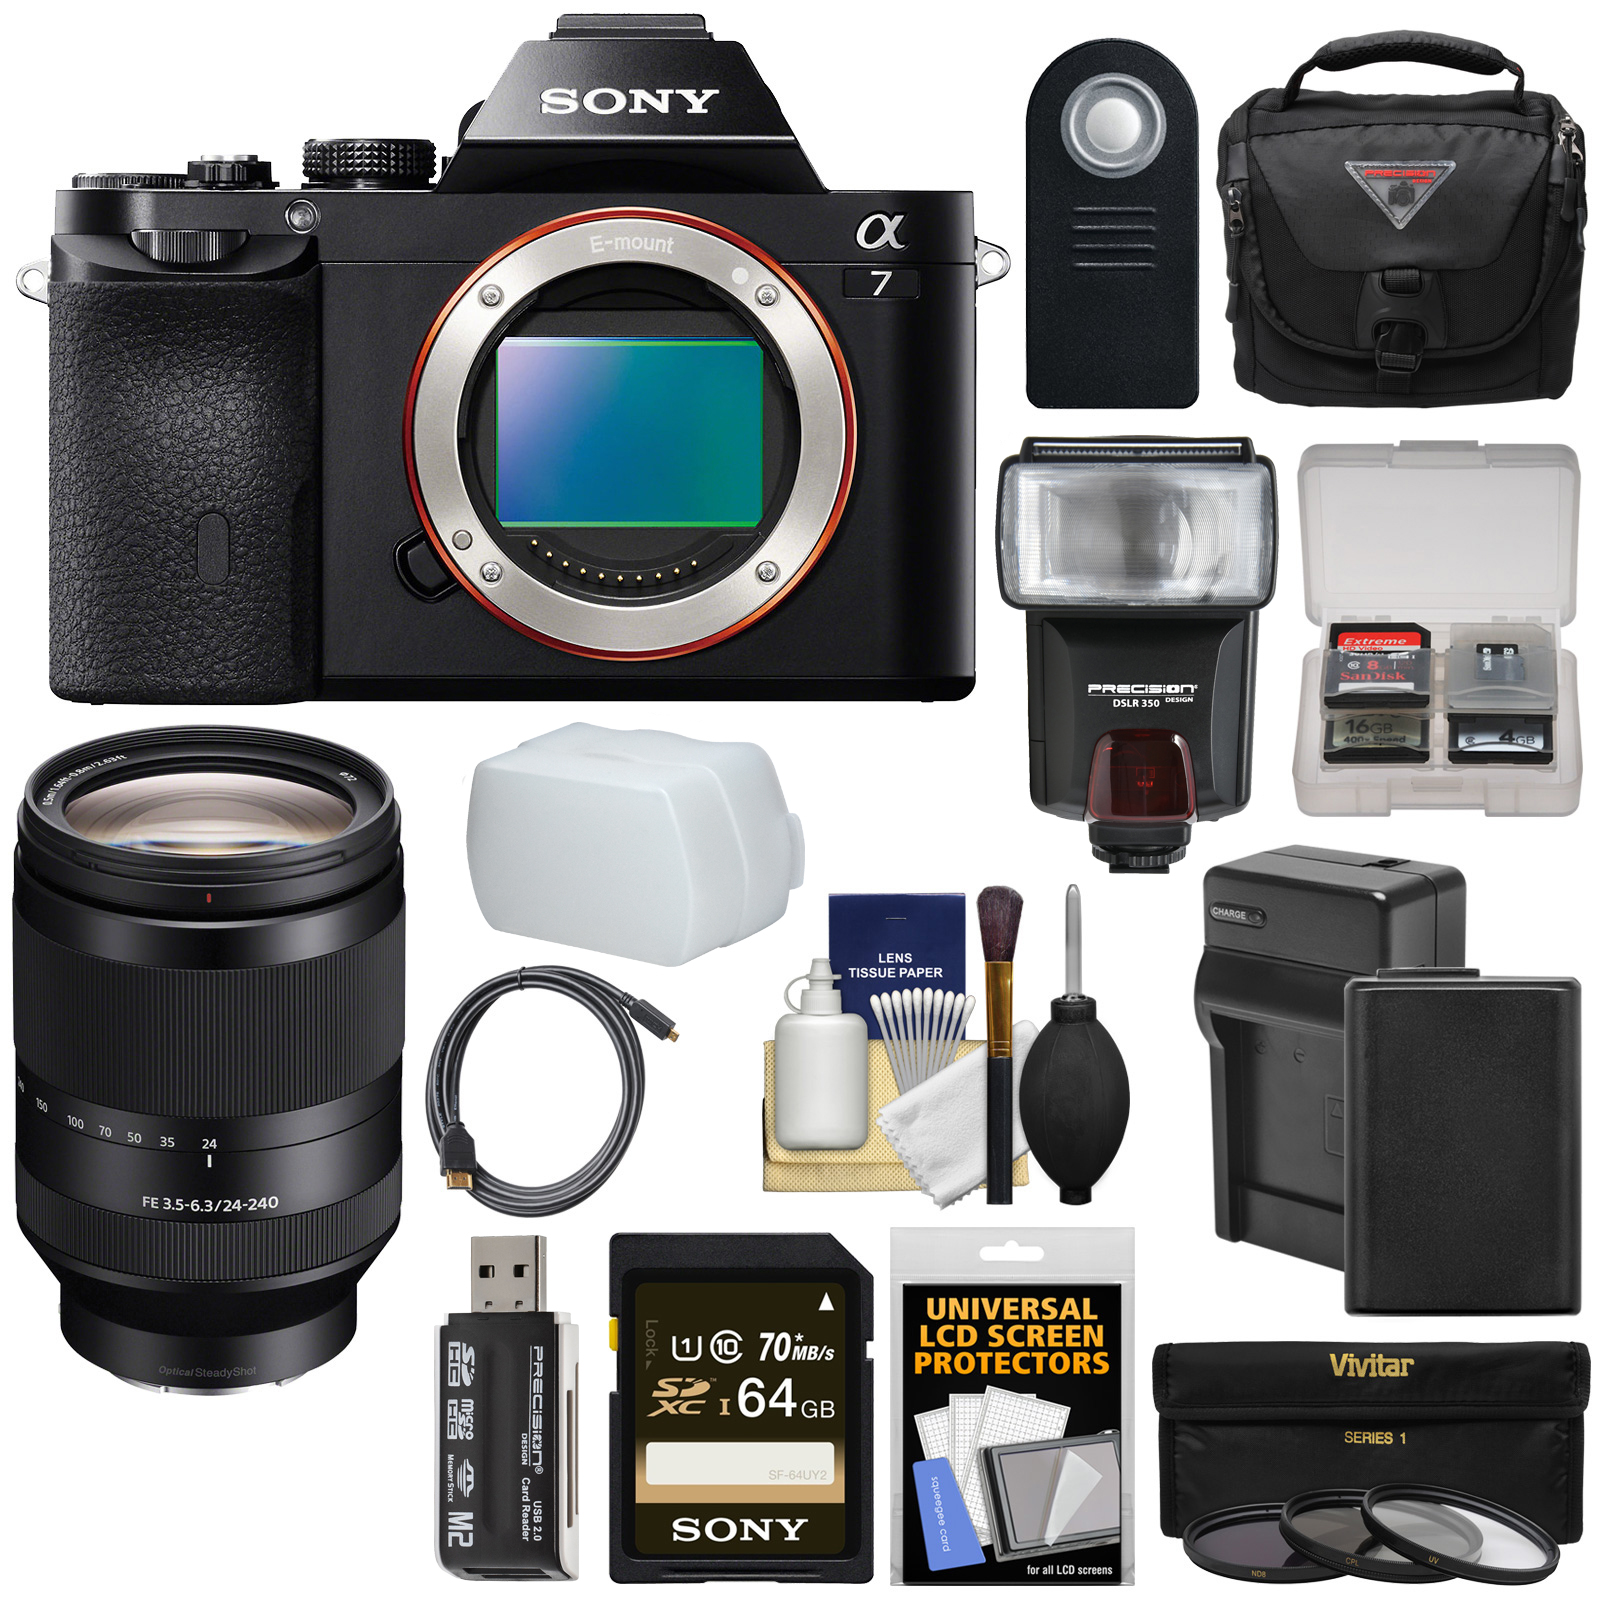 Sony Alpha A7 Digital Camera Body (Black) with FE 24-240mm OSS Lens + 64GB Card + Battery + Charger + Case +... by Sony